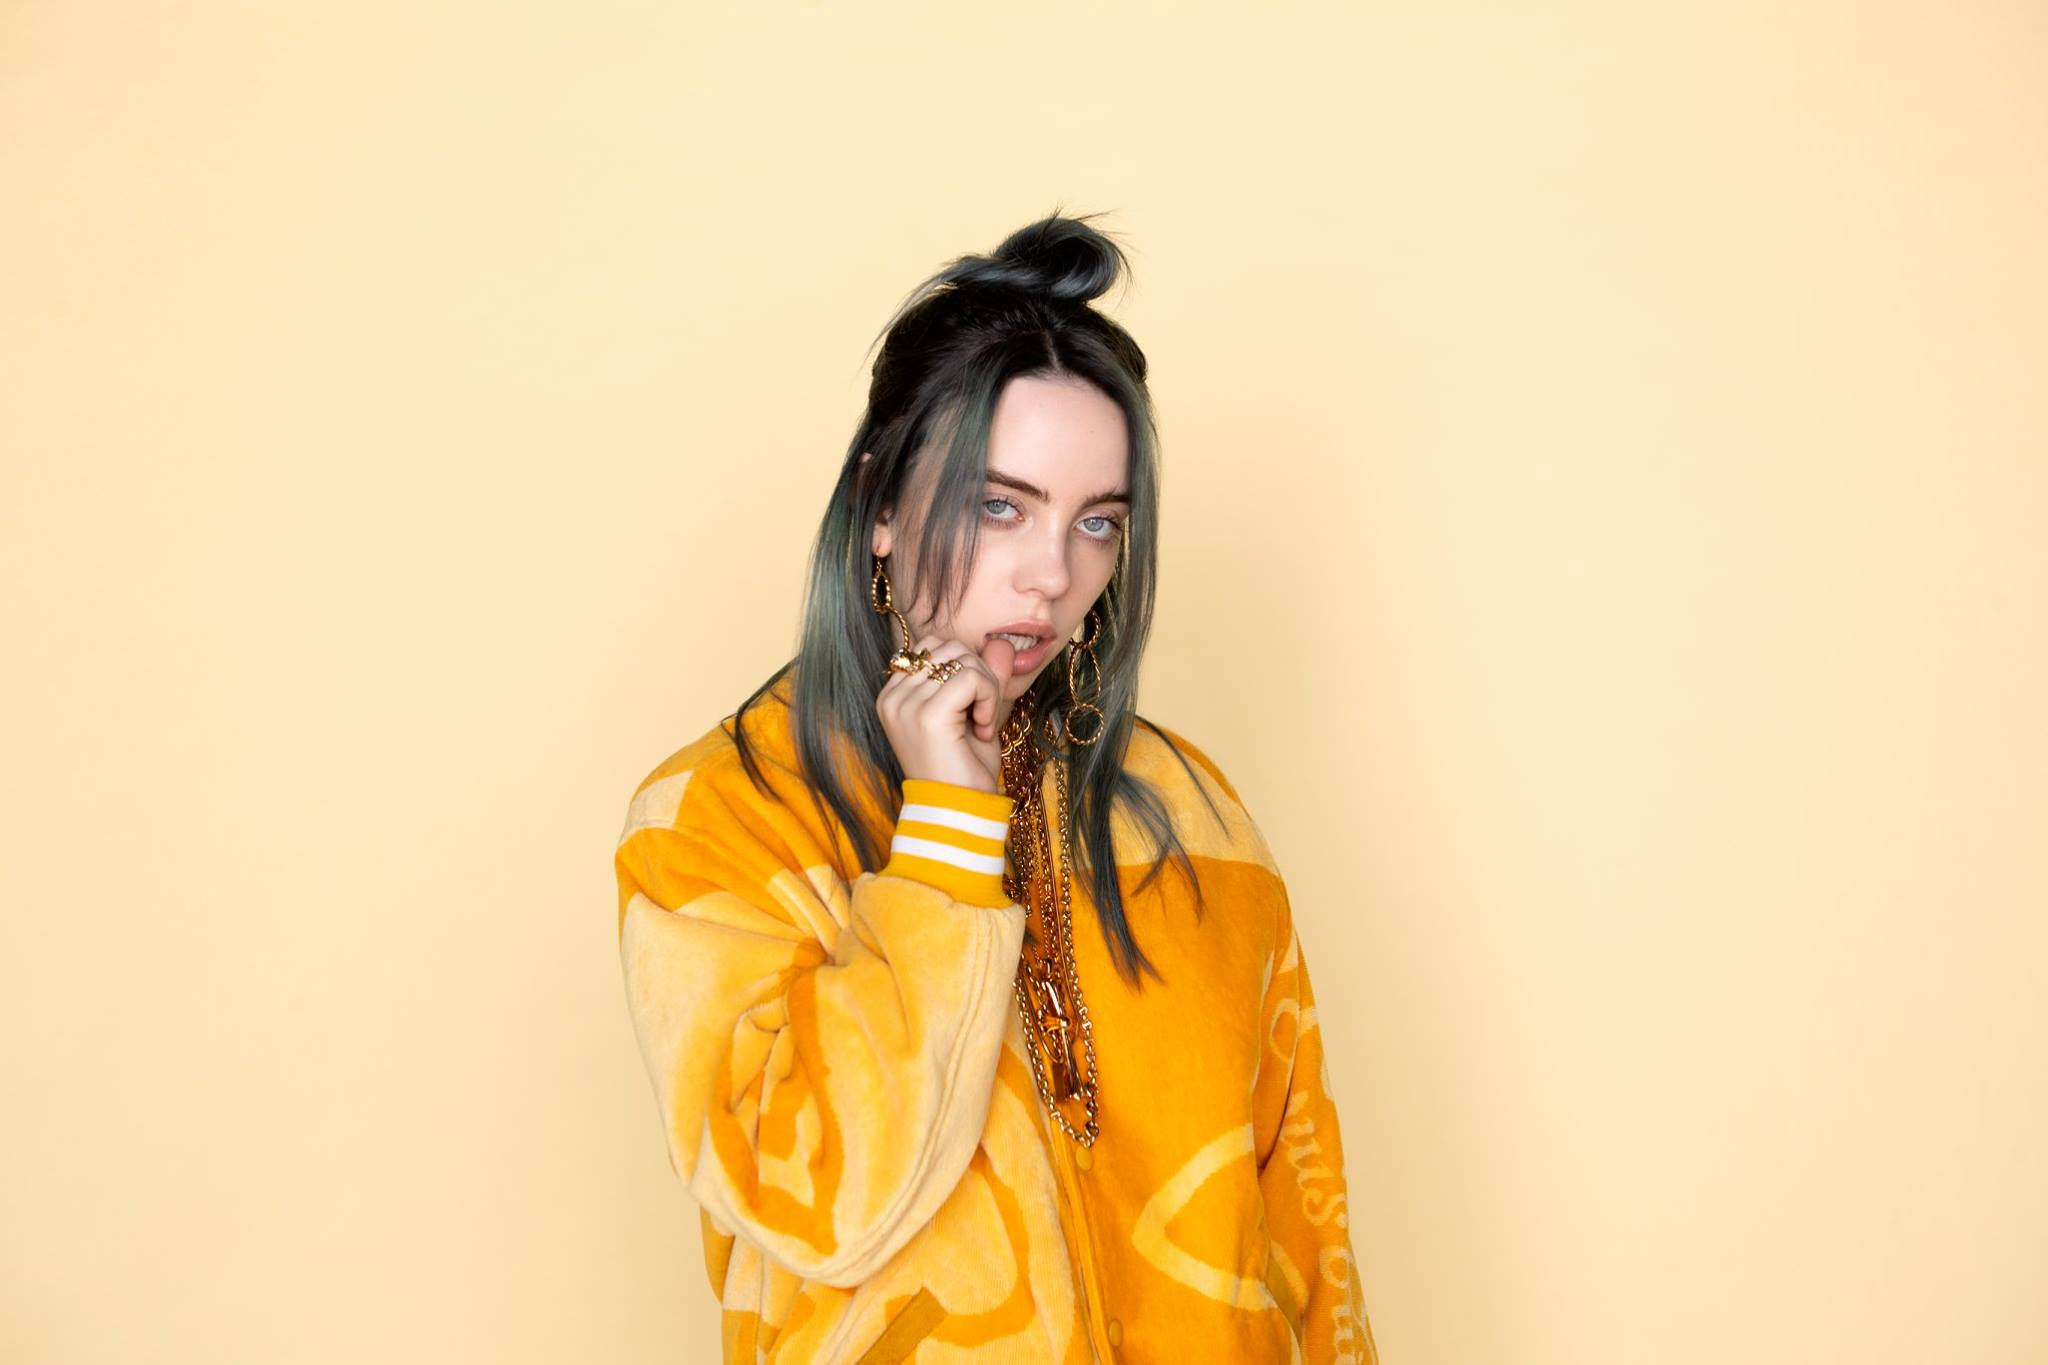 Billie Eilish removes her shirt in a video during a concert to protest against 'body shaming'